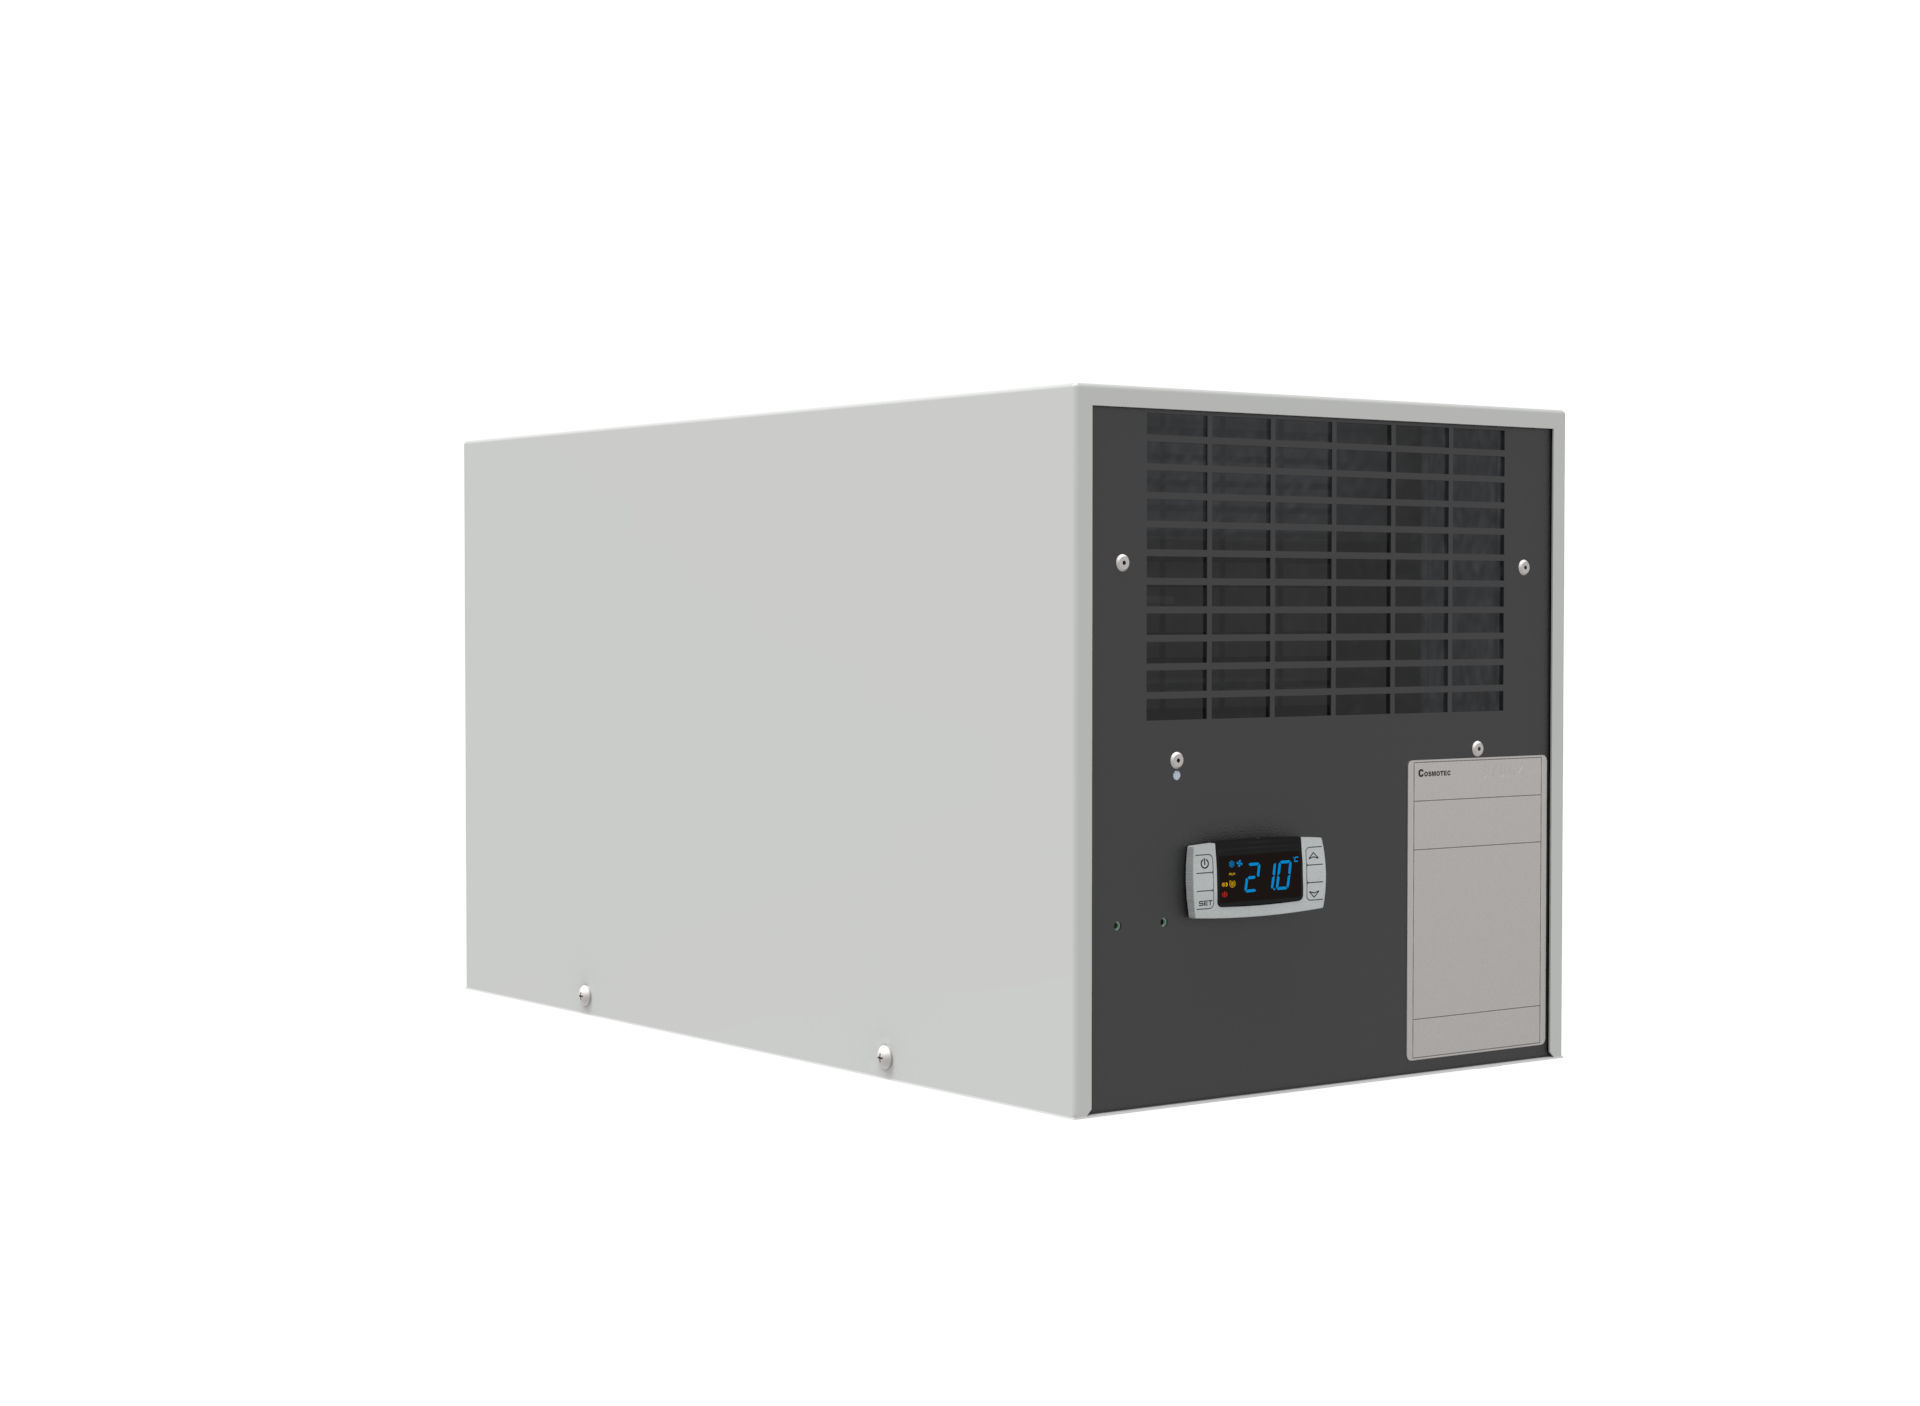 Industrial Computer Cabinet Ceiling Mounted Cabinet Air Conditioner Air Cooled Industrial